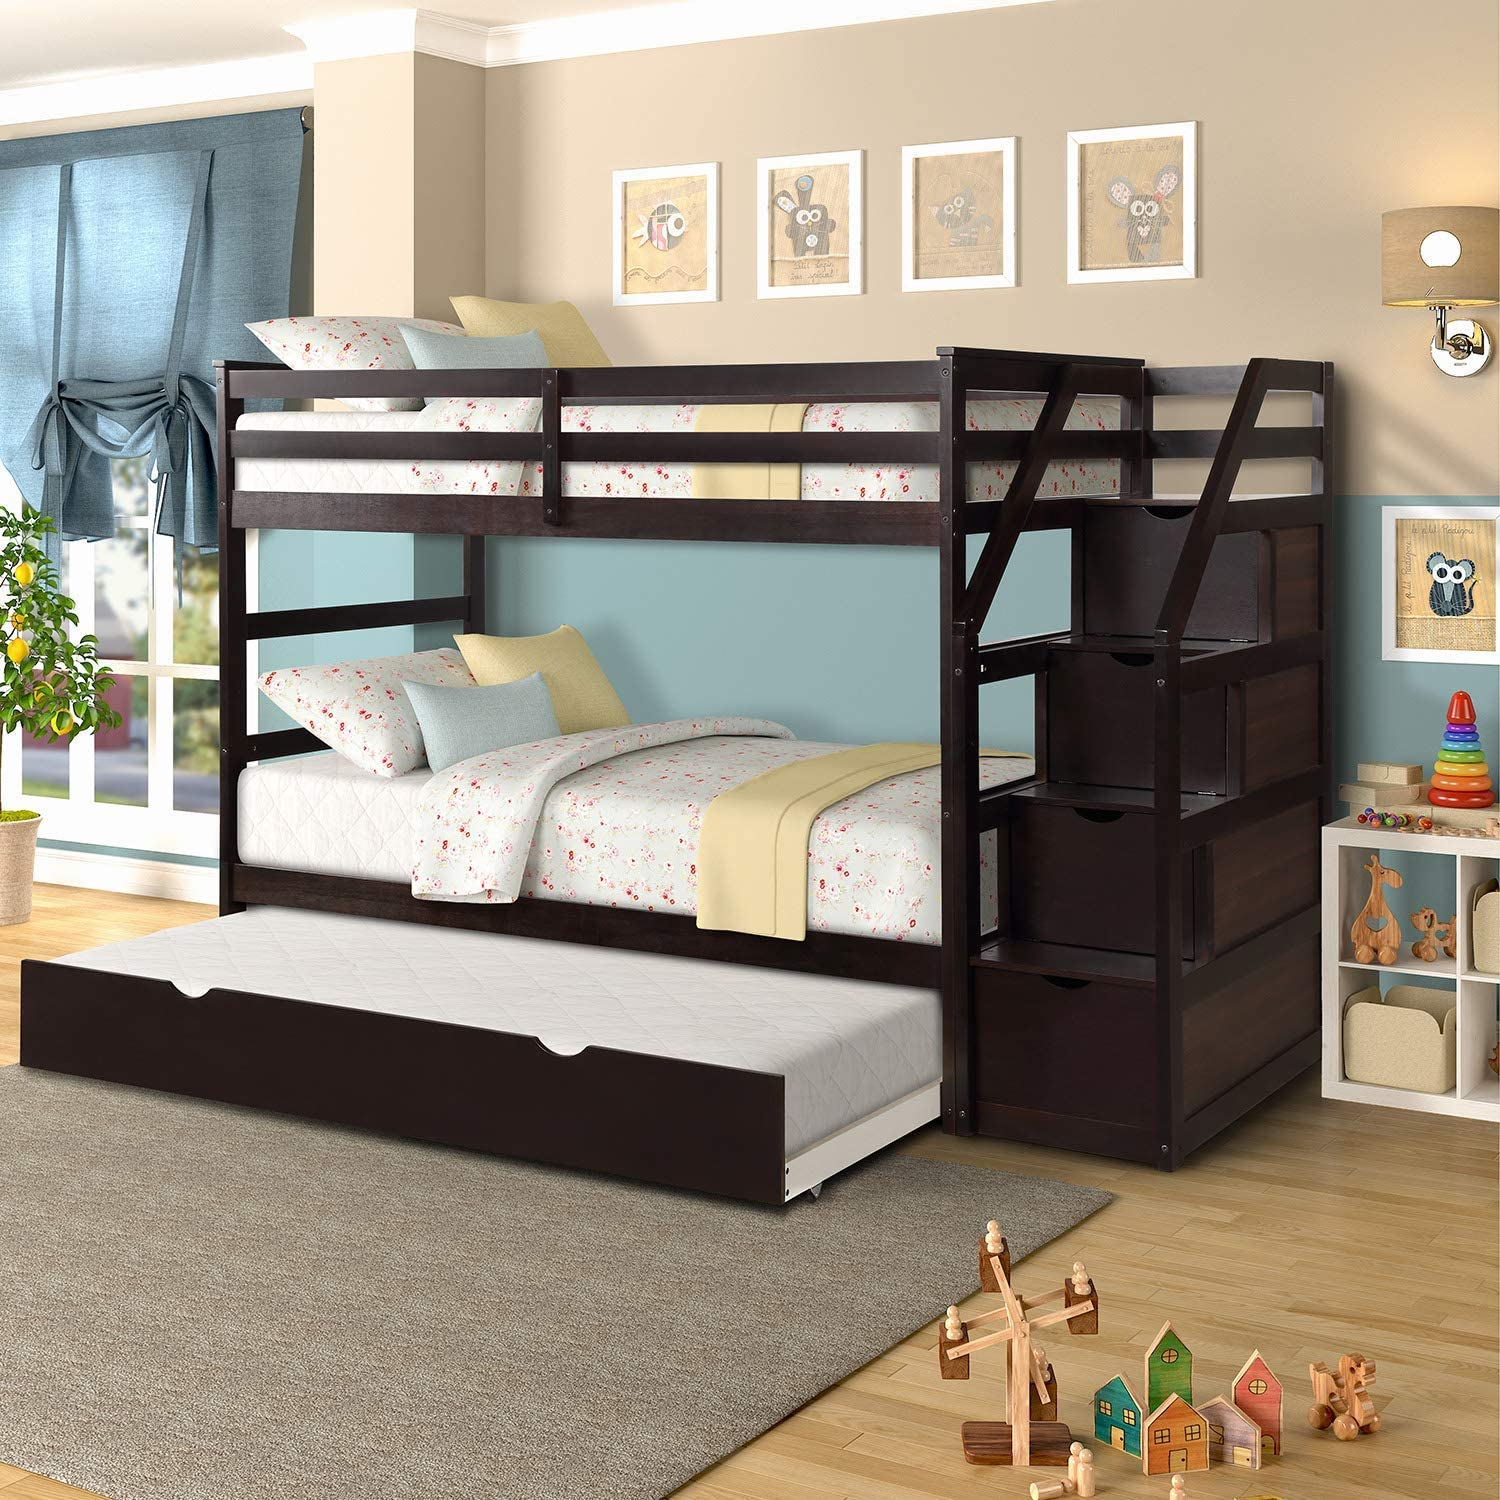 Amazon Com Twin Over Twin Bunk Bed For Kids Wood Twin Bunk Bed With Storage And Trundle Espresso Bunk Kitchen Dining